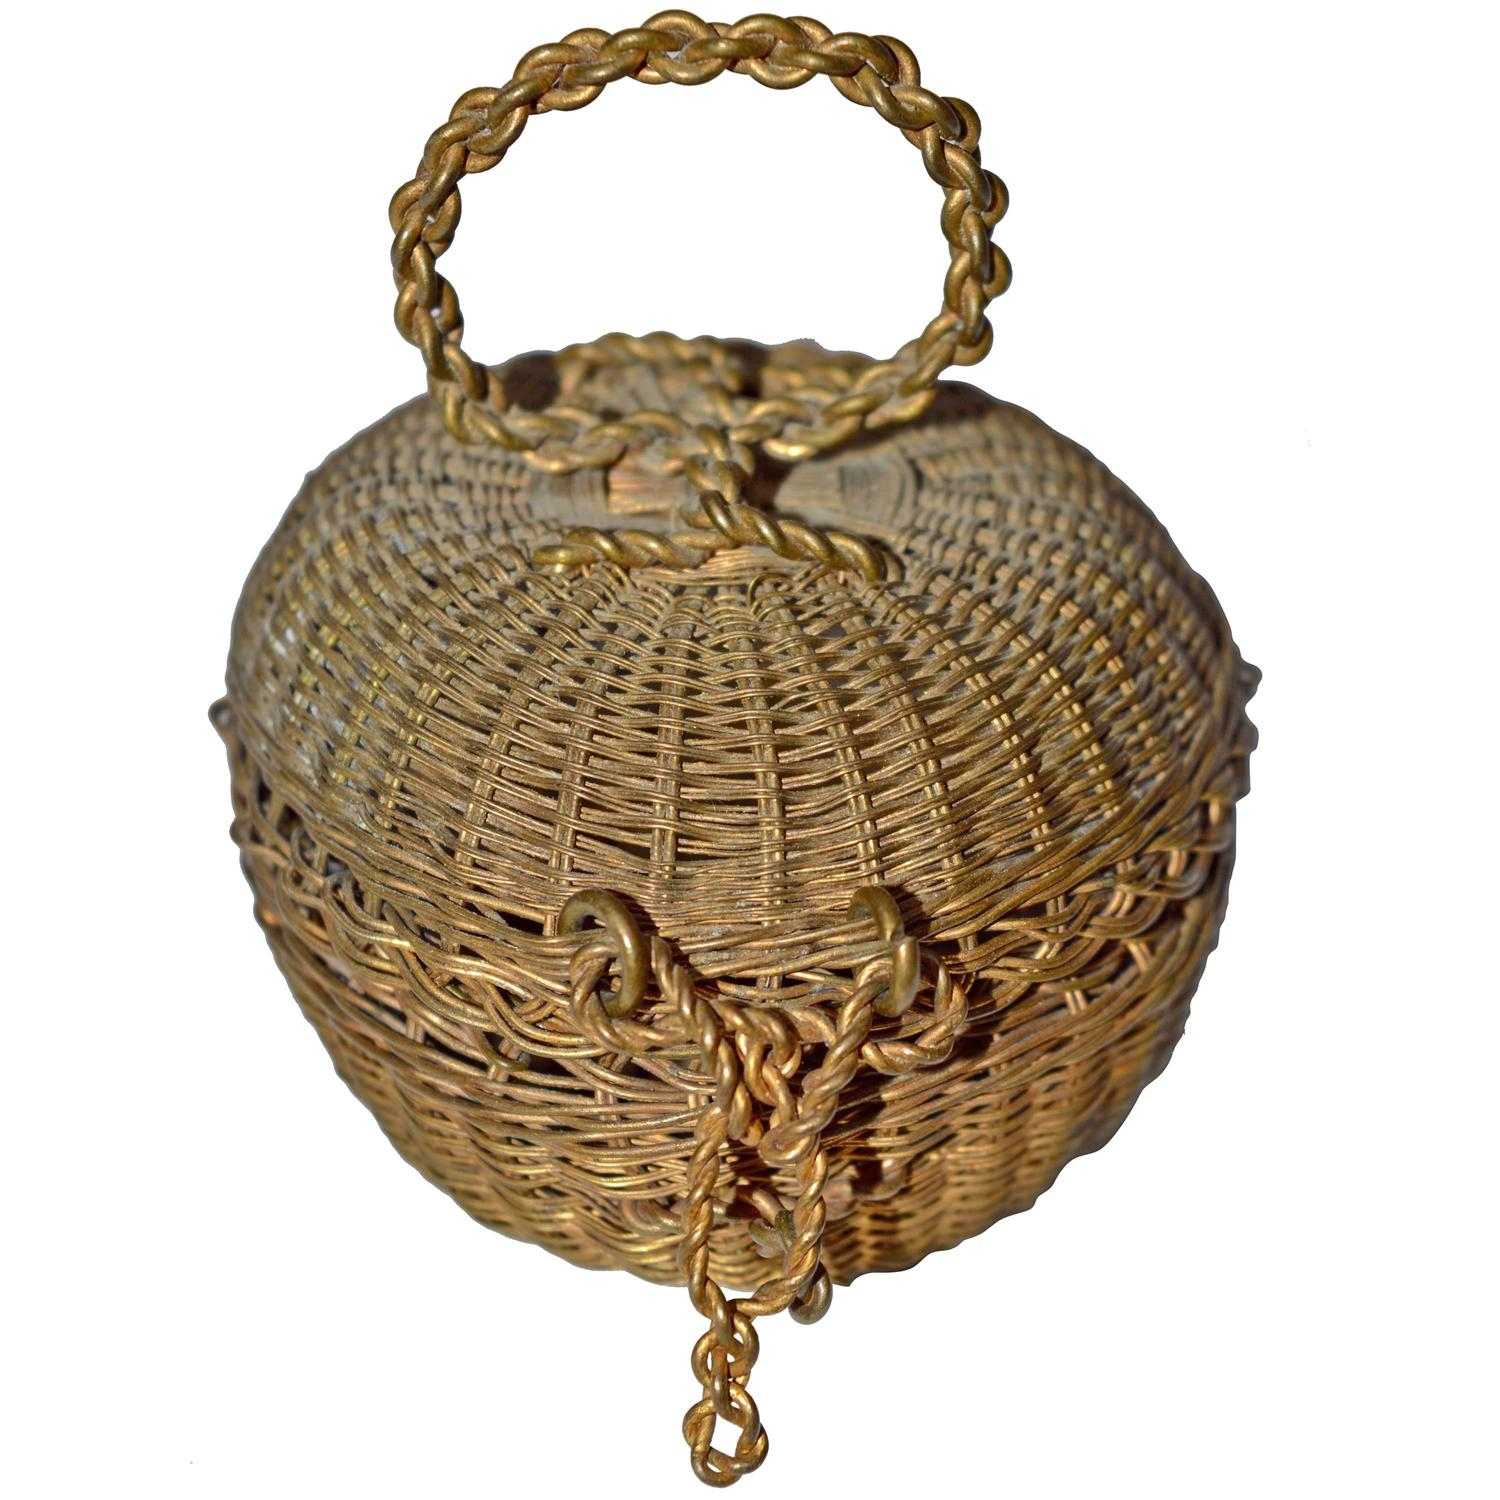 Basket Weaving Jewelry : Small finely woven th century french brass basket